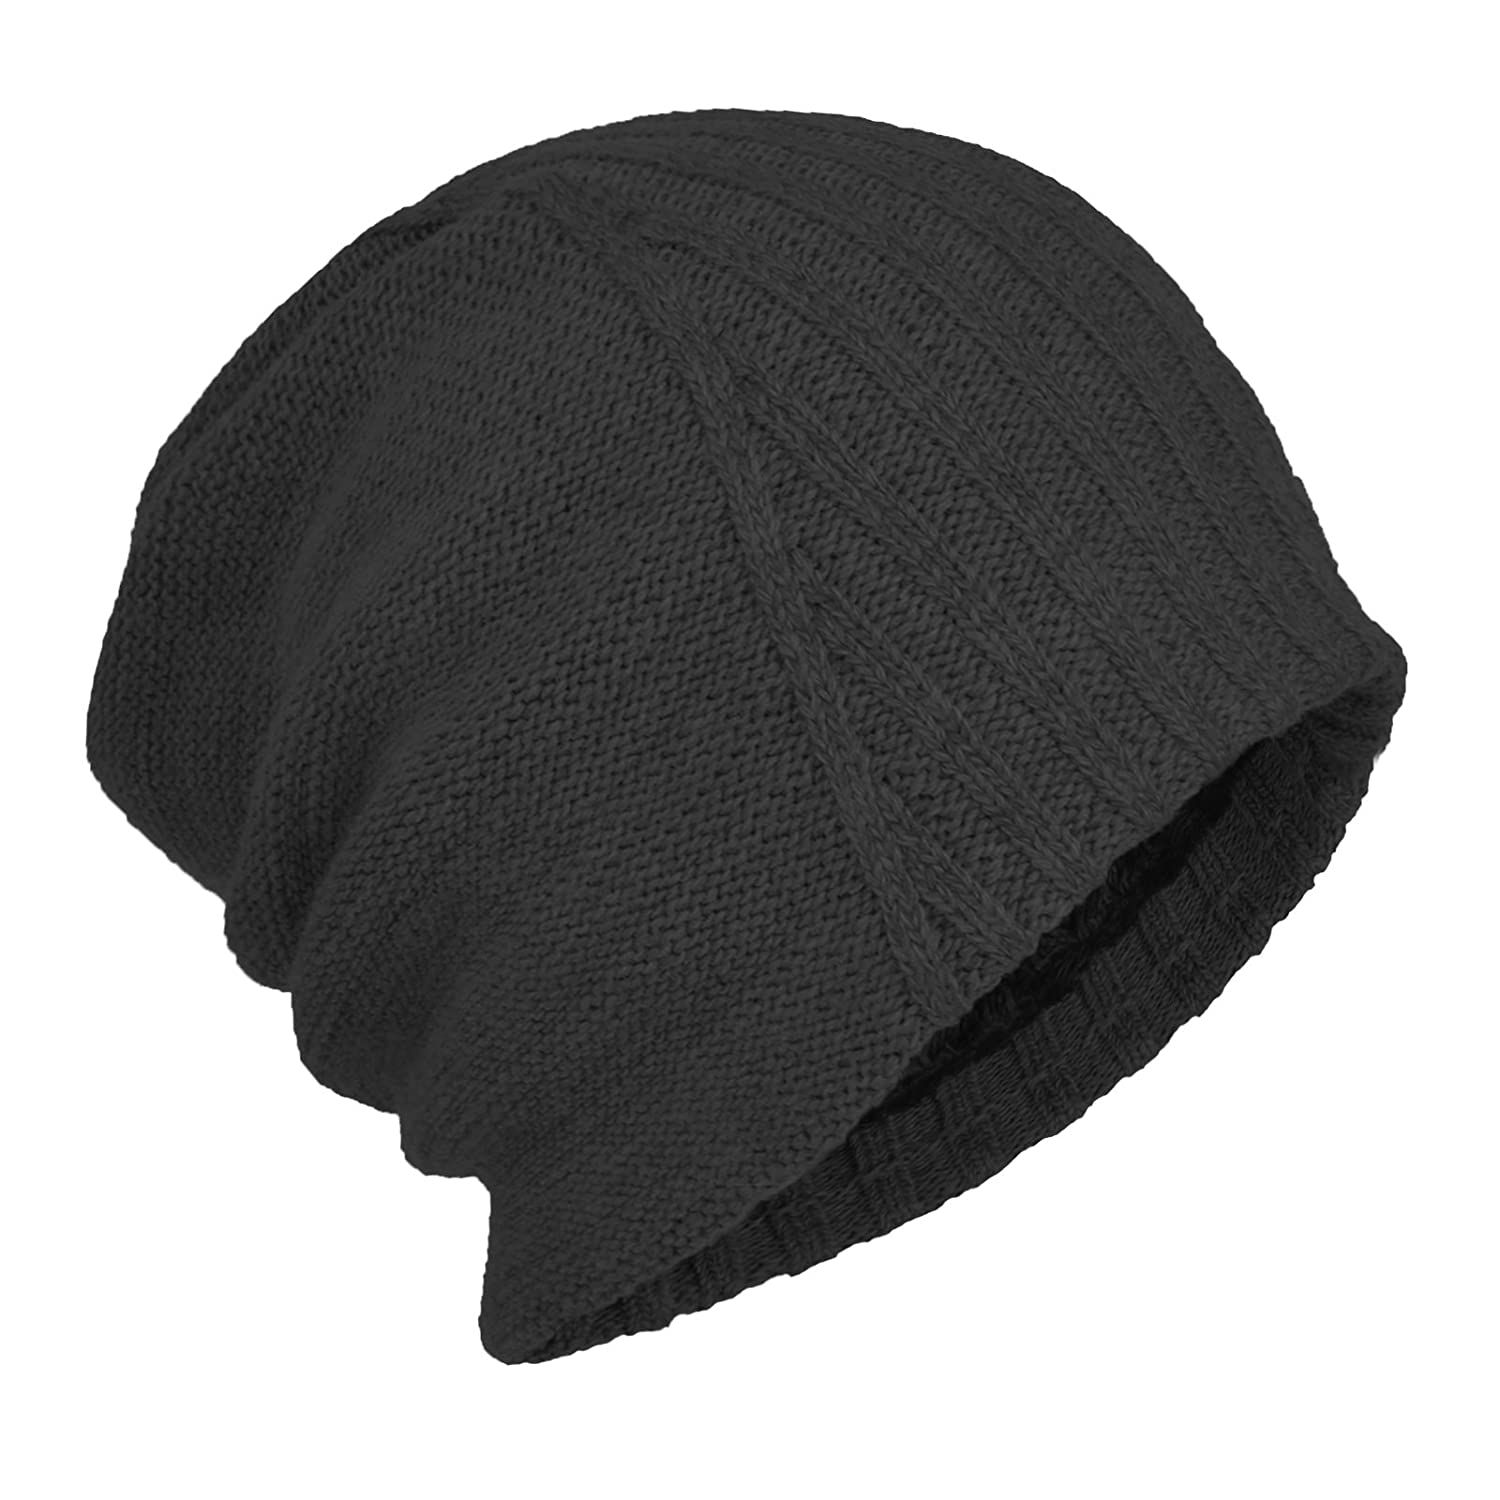 Janey Rubbins Winter Oversized Slouchy Style Beanie Fleece Lined Stocking  Skull Cap Knit Ski Hat (Black) at Amazon Men s Clothing store  01a51f601df1